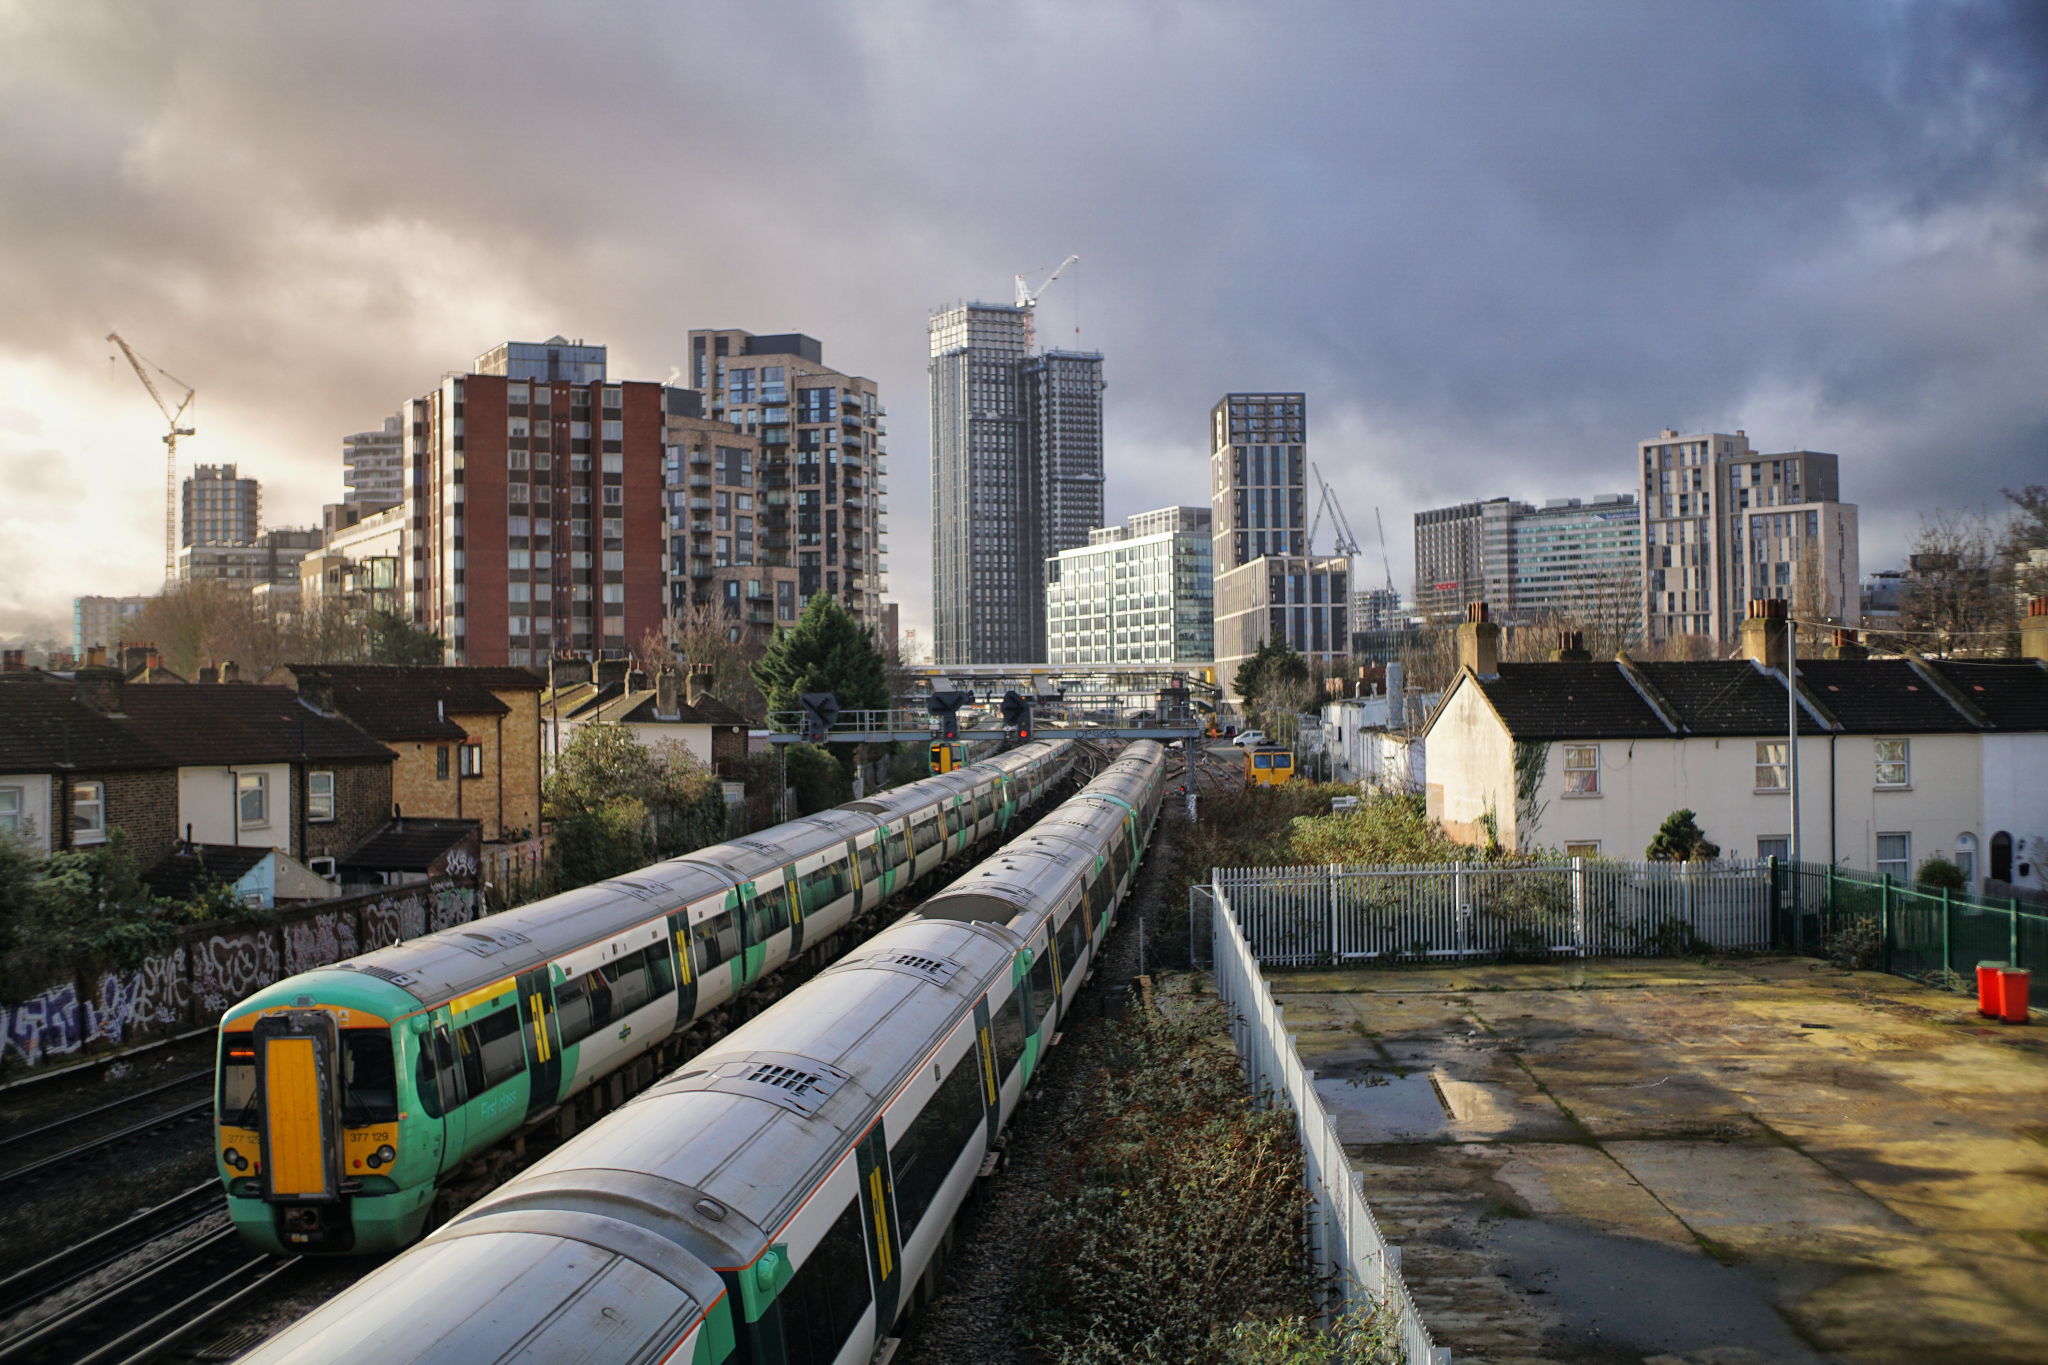 Train with highrise buildings in the background -South East London